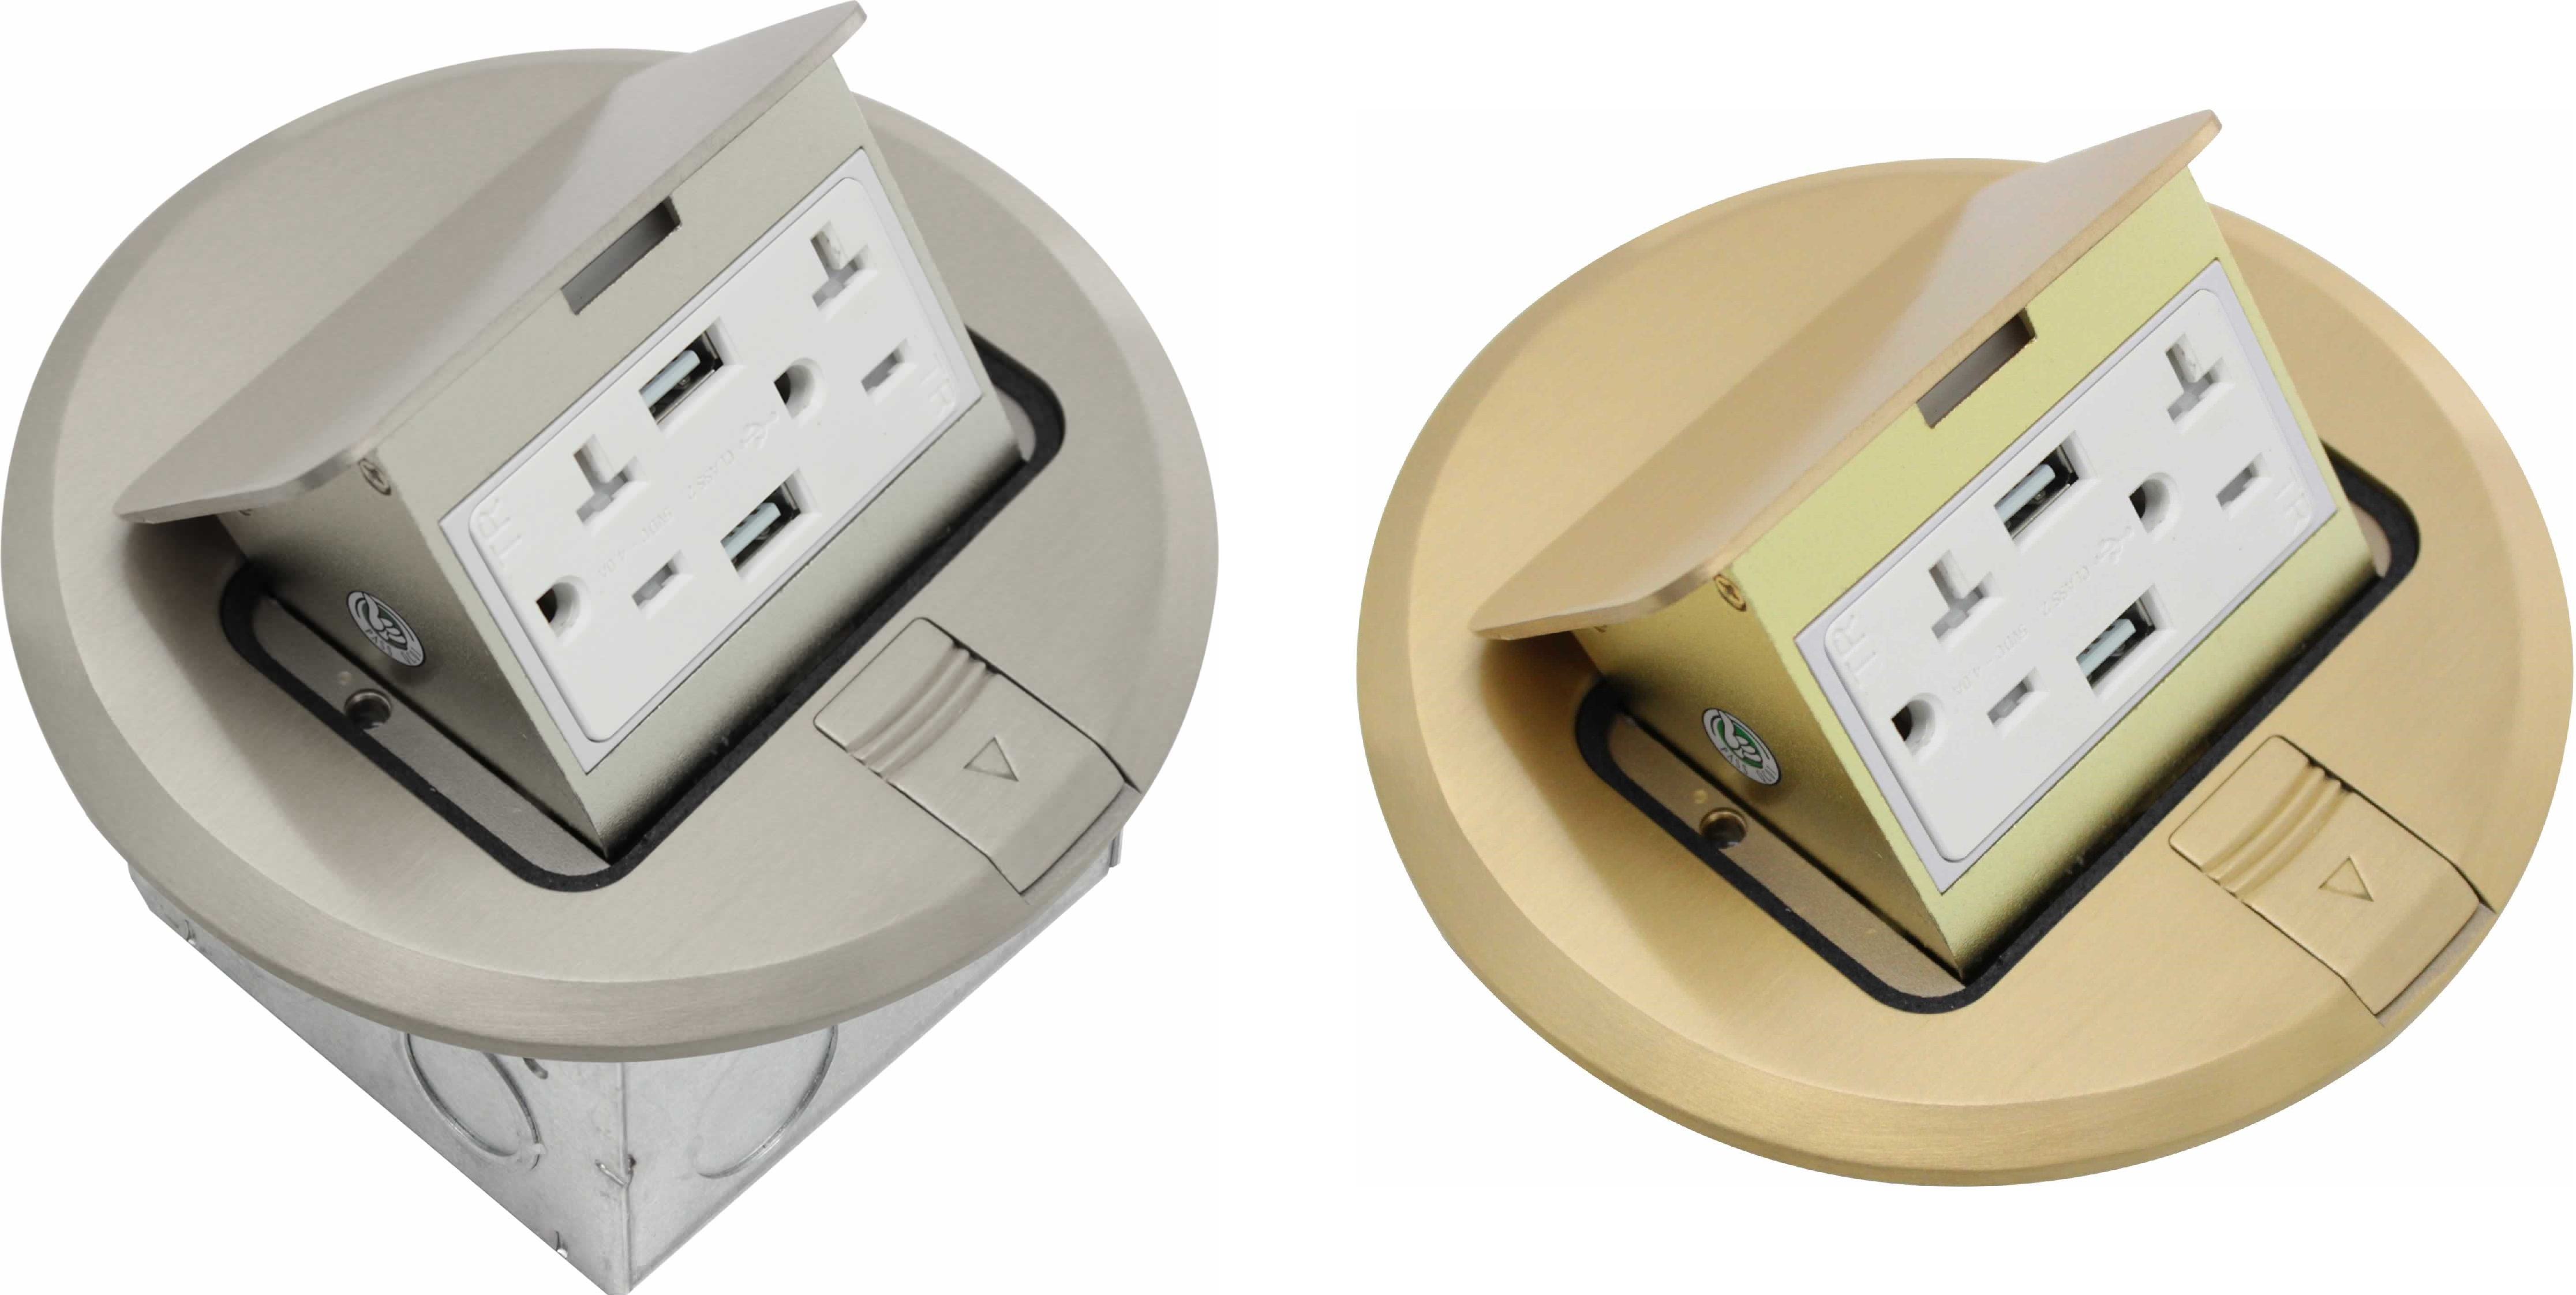 Blog - USB Receptacle Pop-Up Floor Boxes